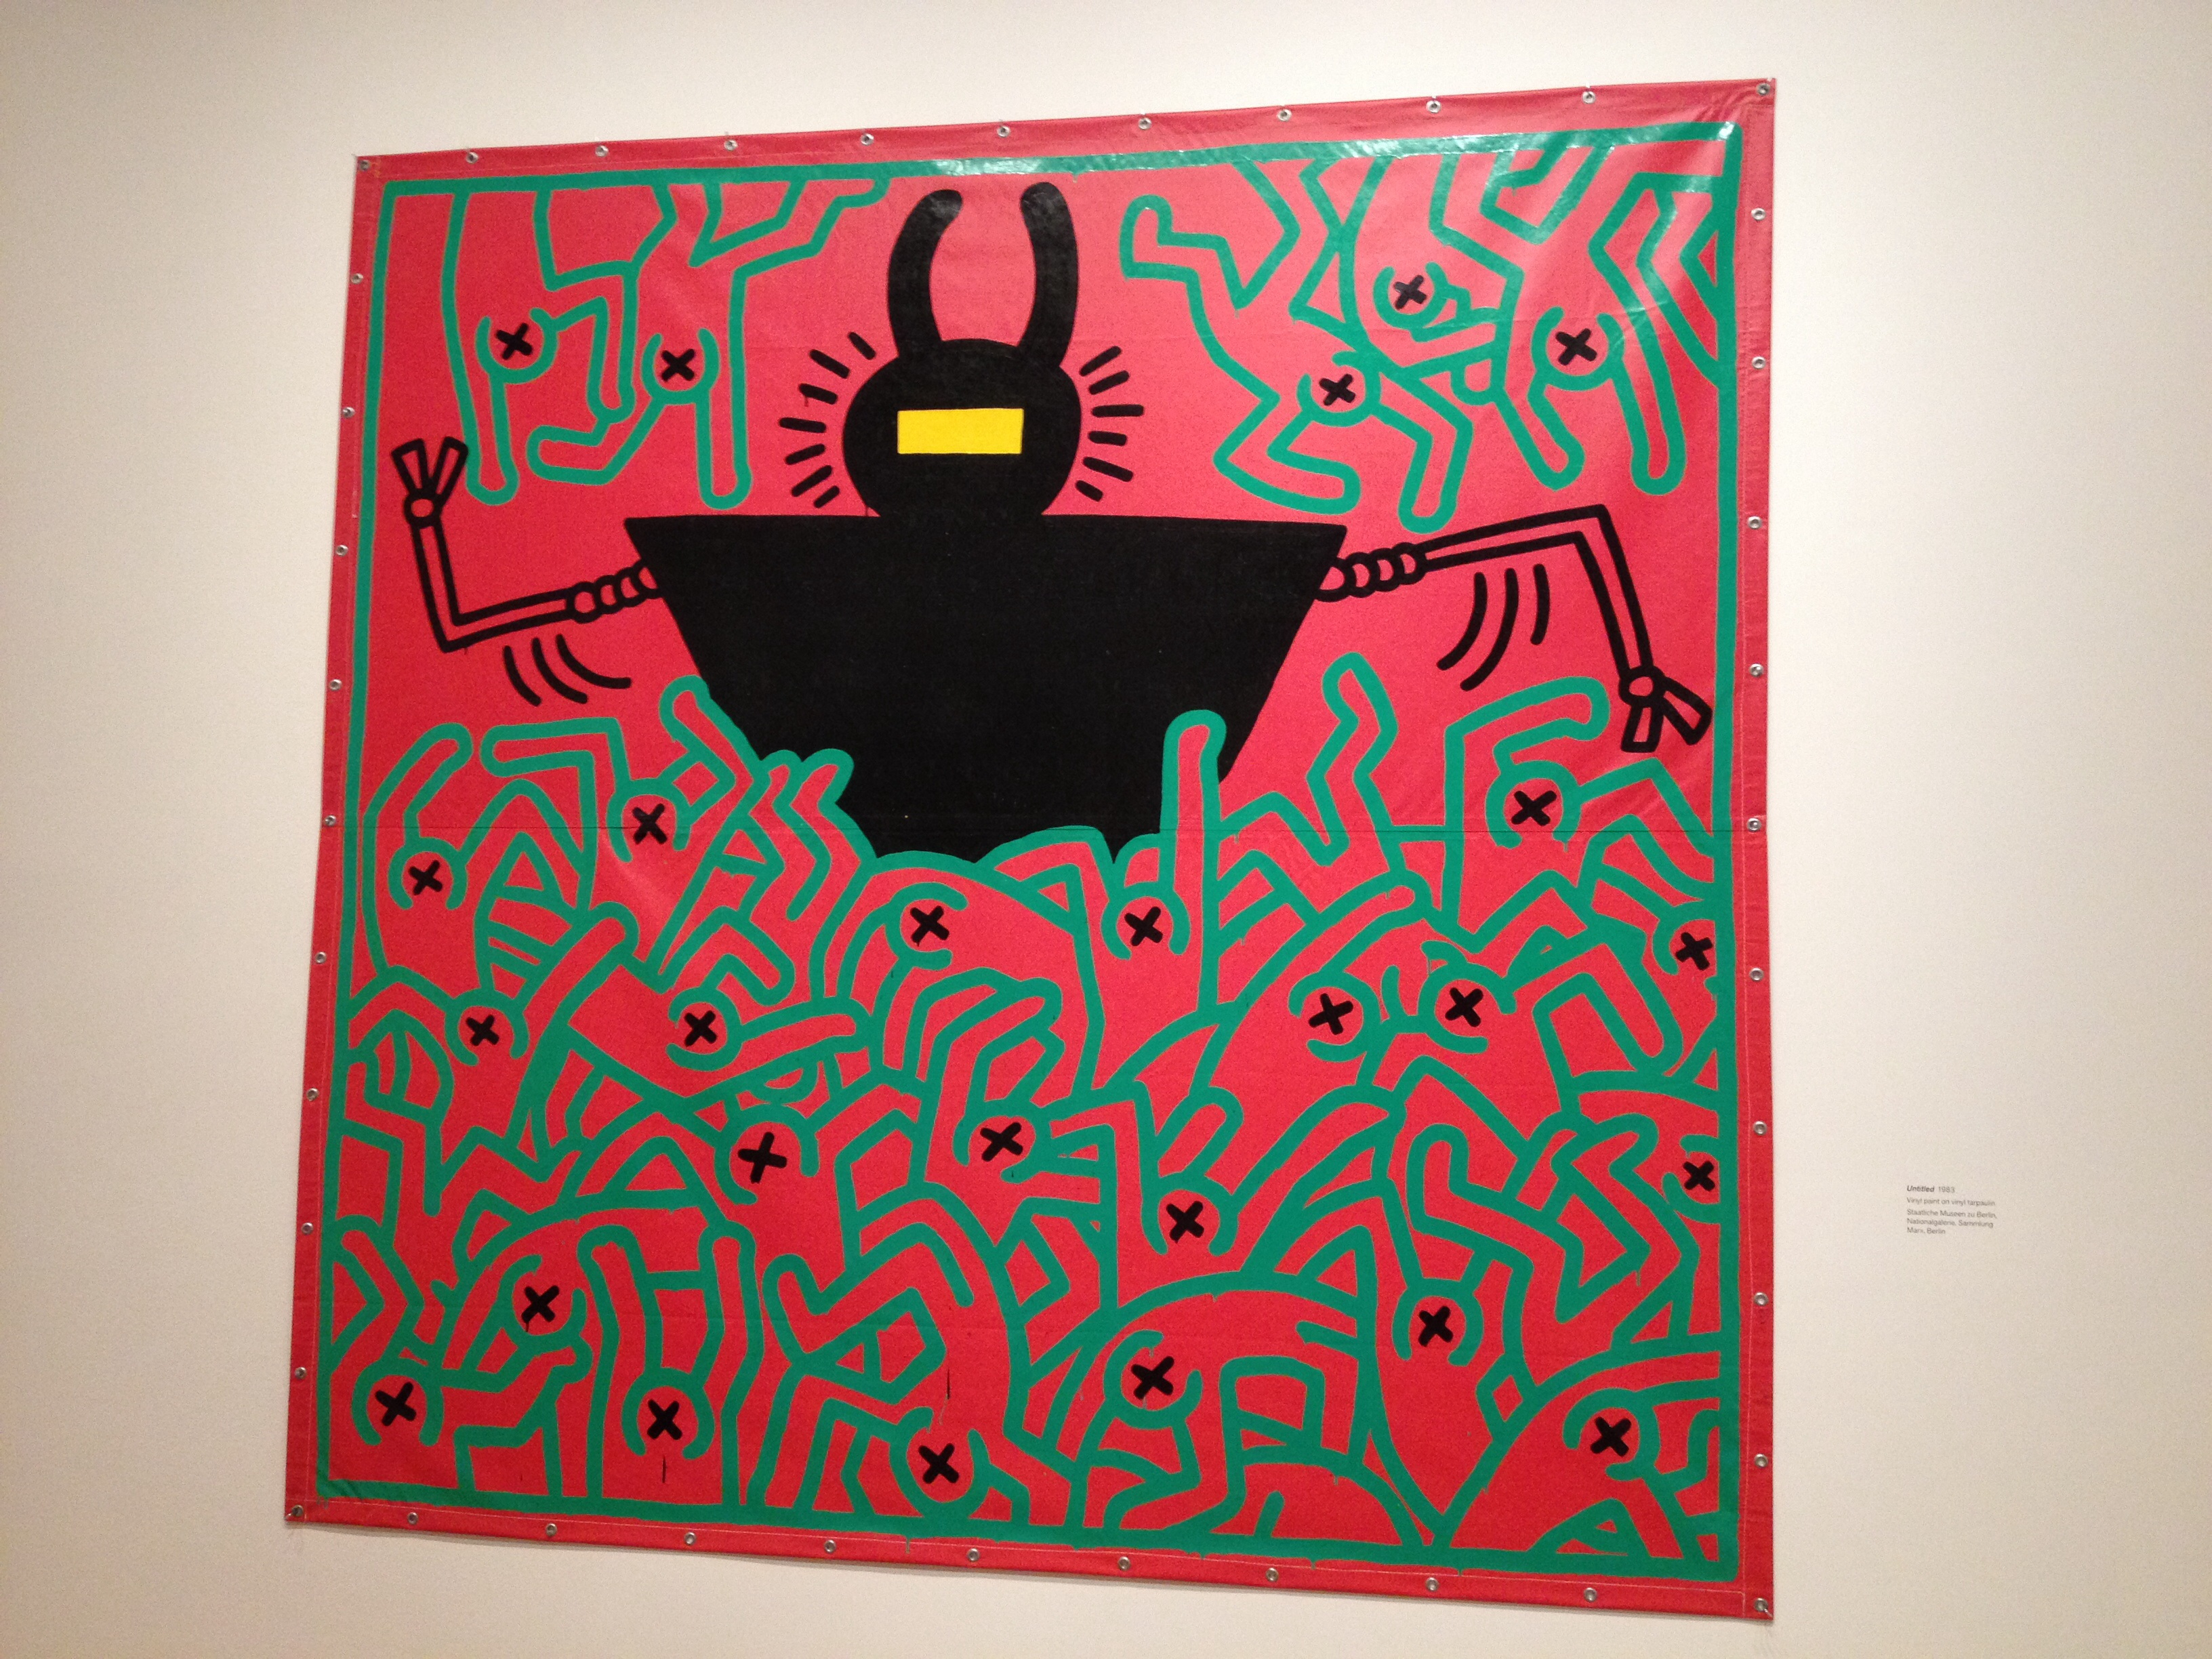 Keith  Haring, Untitled, 1983 The Political Line: Keith Haring, De Young Museum,  San Francisco, Ca.,  November 8, 2014- February 16, 2015